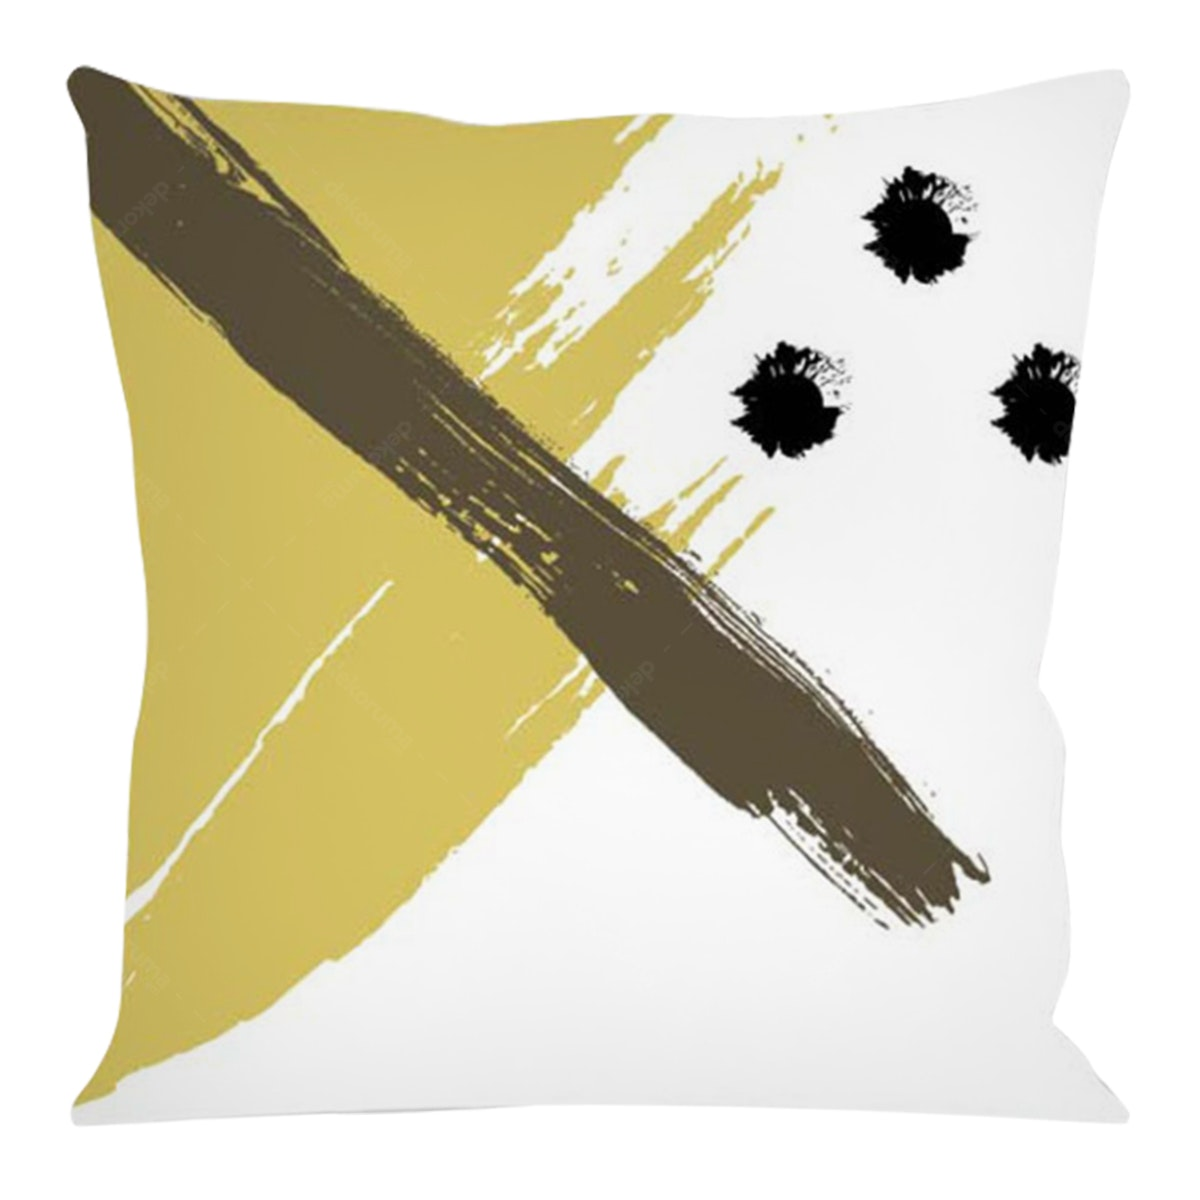 On&On Gold Paint #2 Cushion 40x40cm